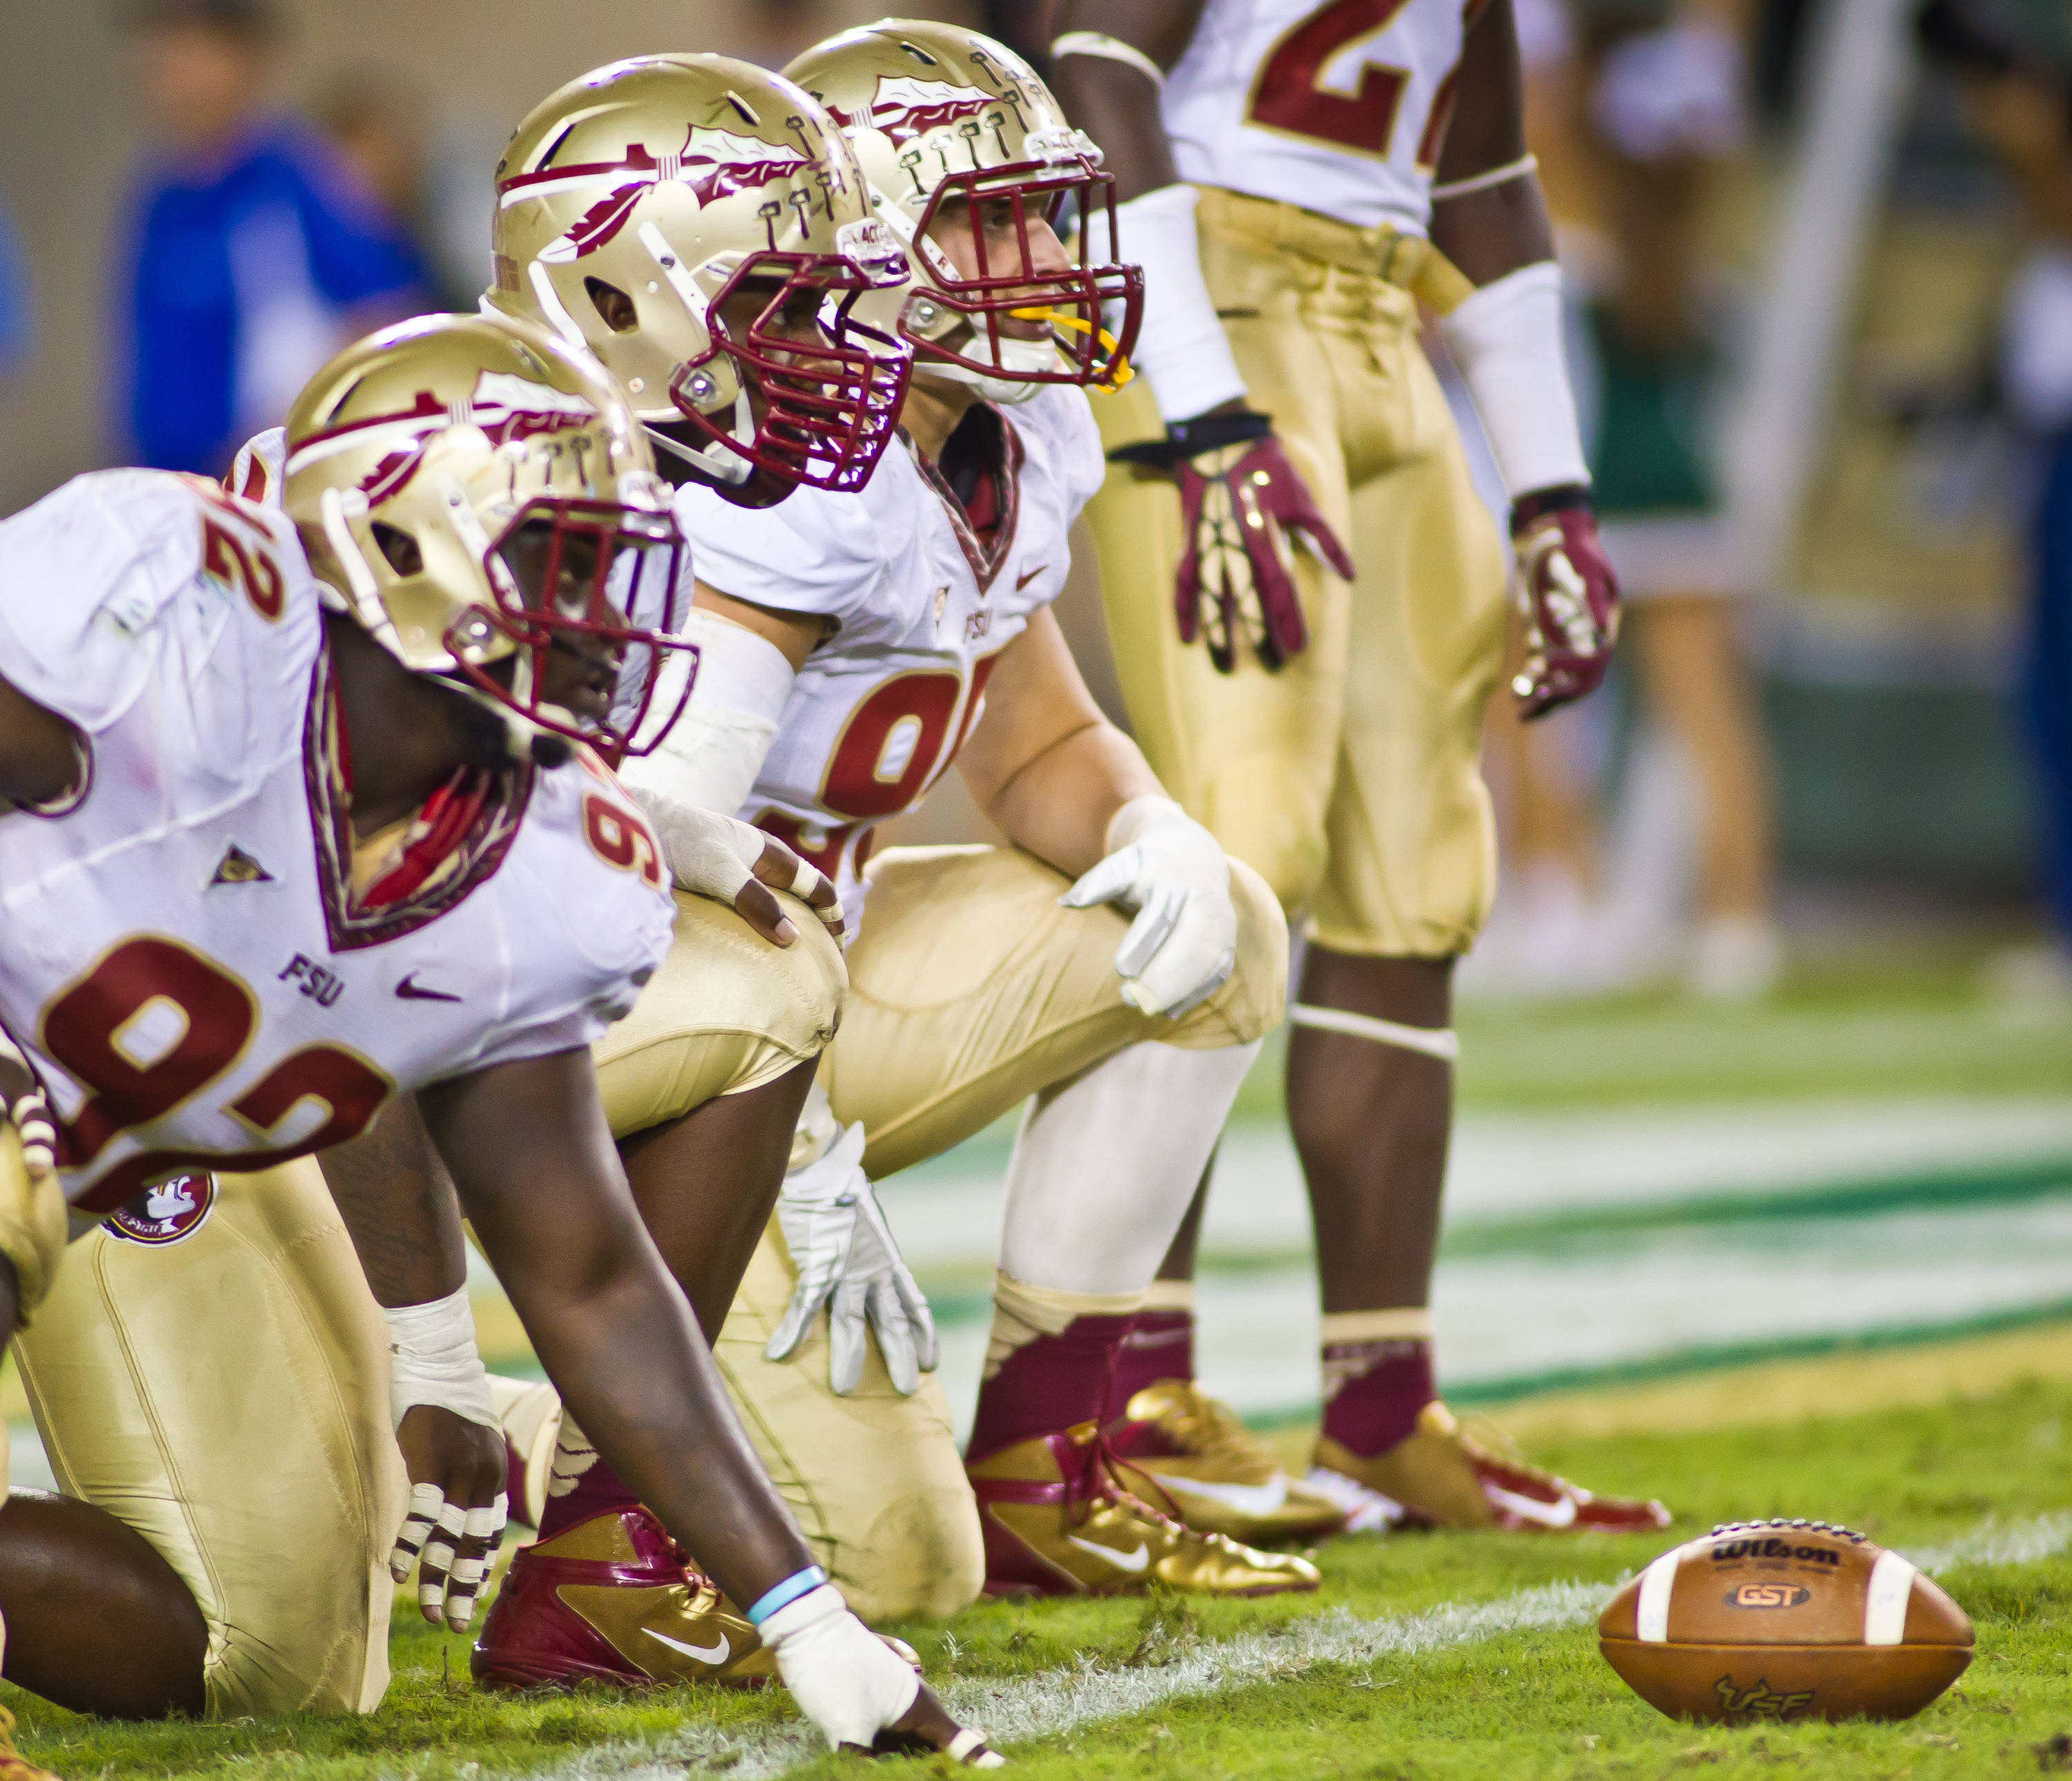 The defensive front lines up to stop USF.